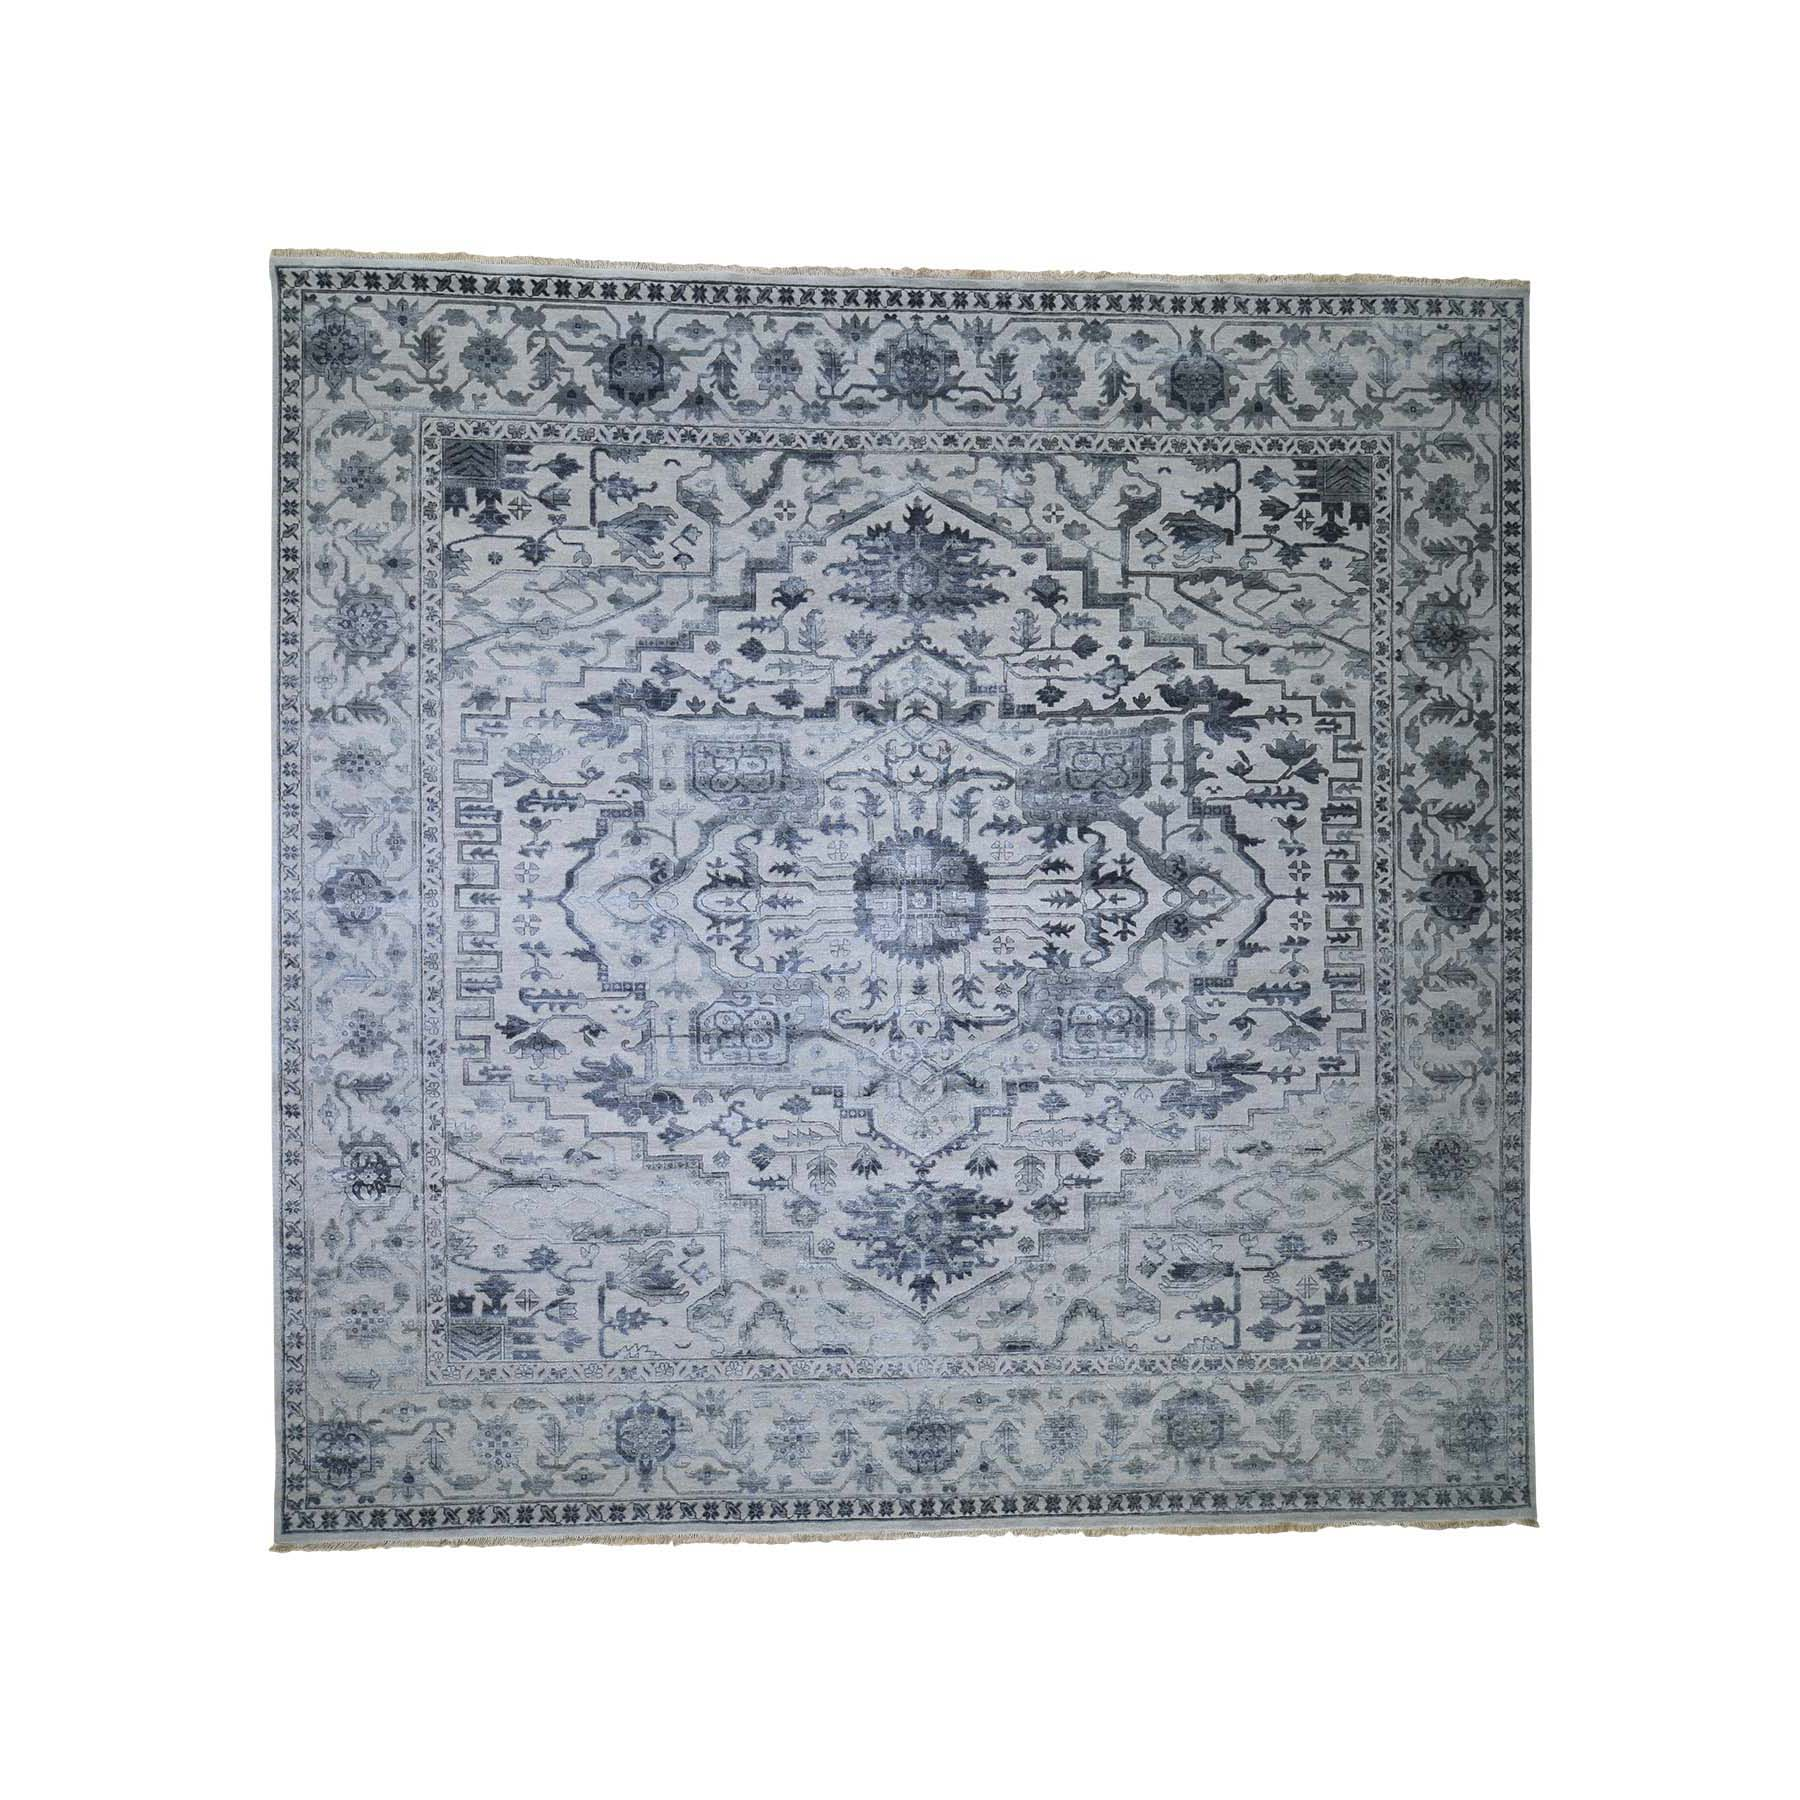 Serapi Heriz and Bakhshayesh Collection Hand Knotted Grey Rug No: 189830